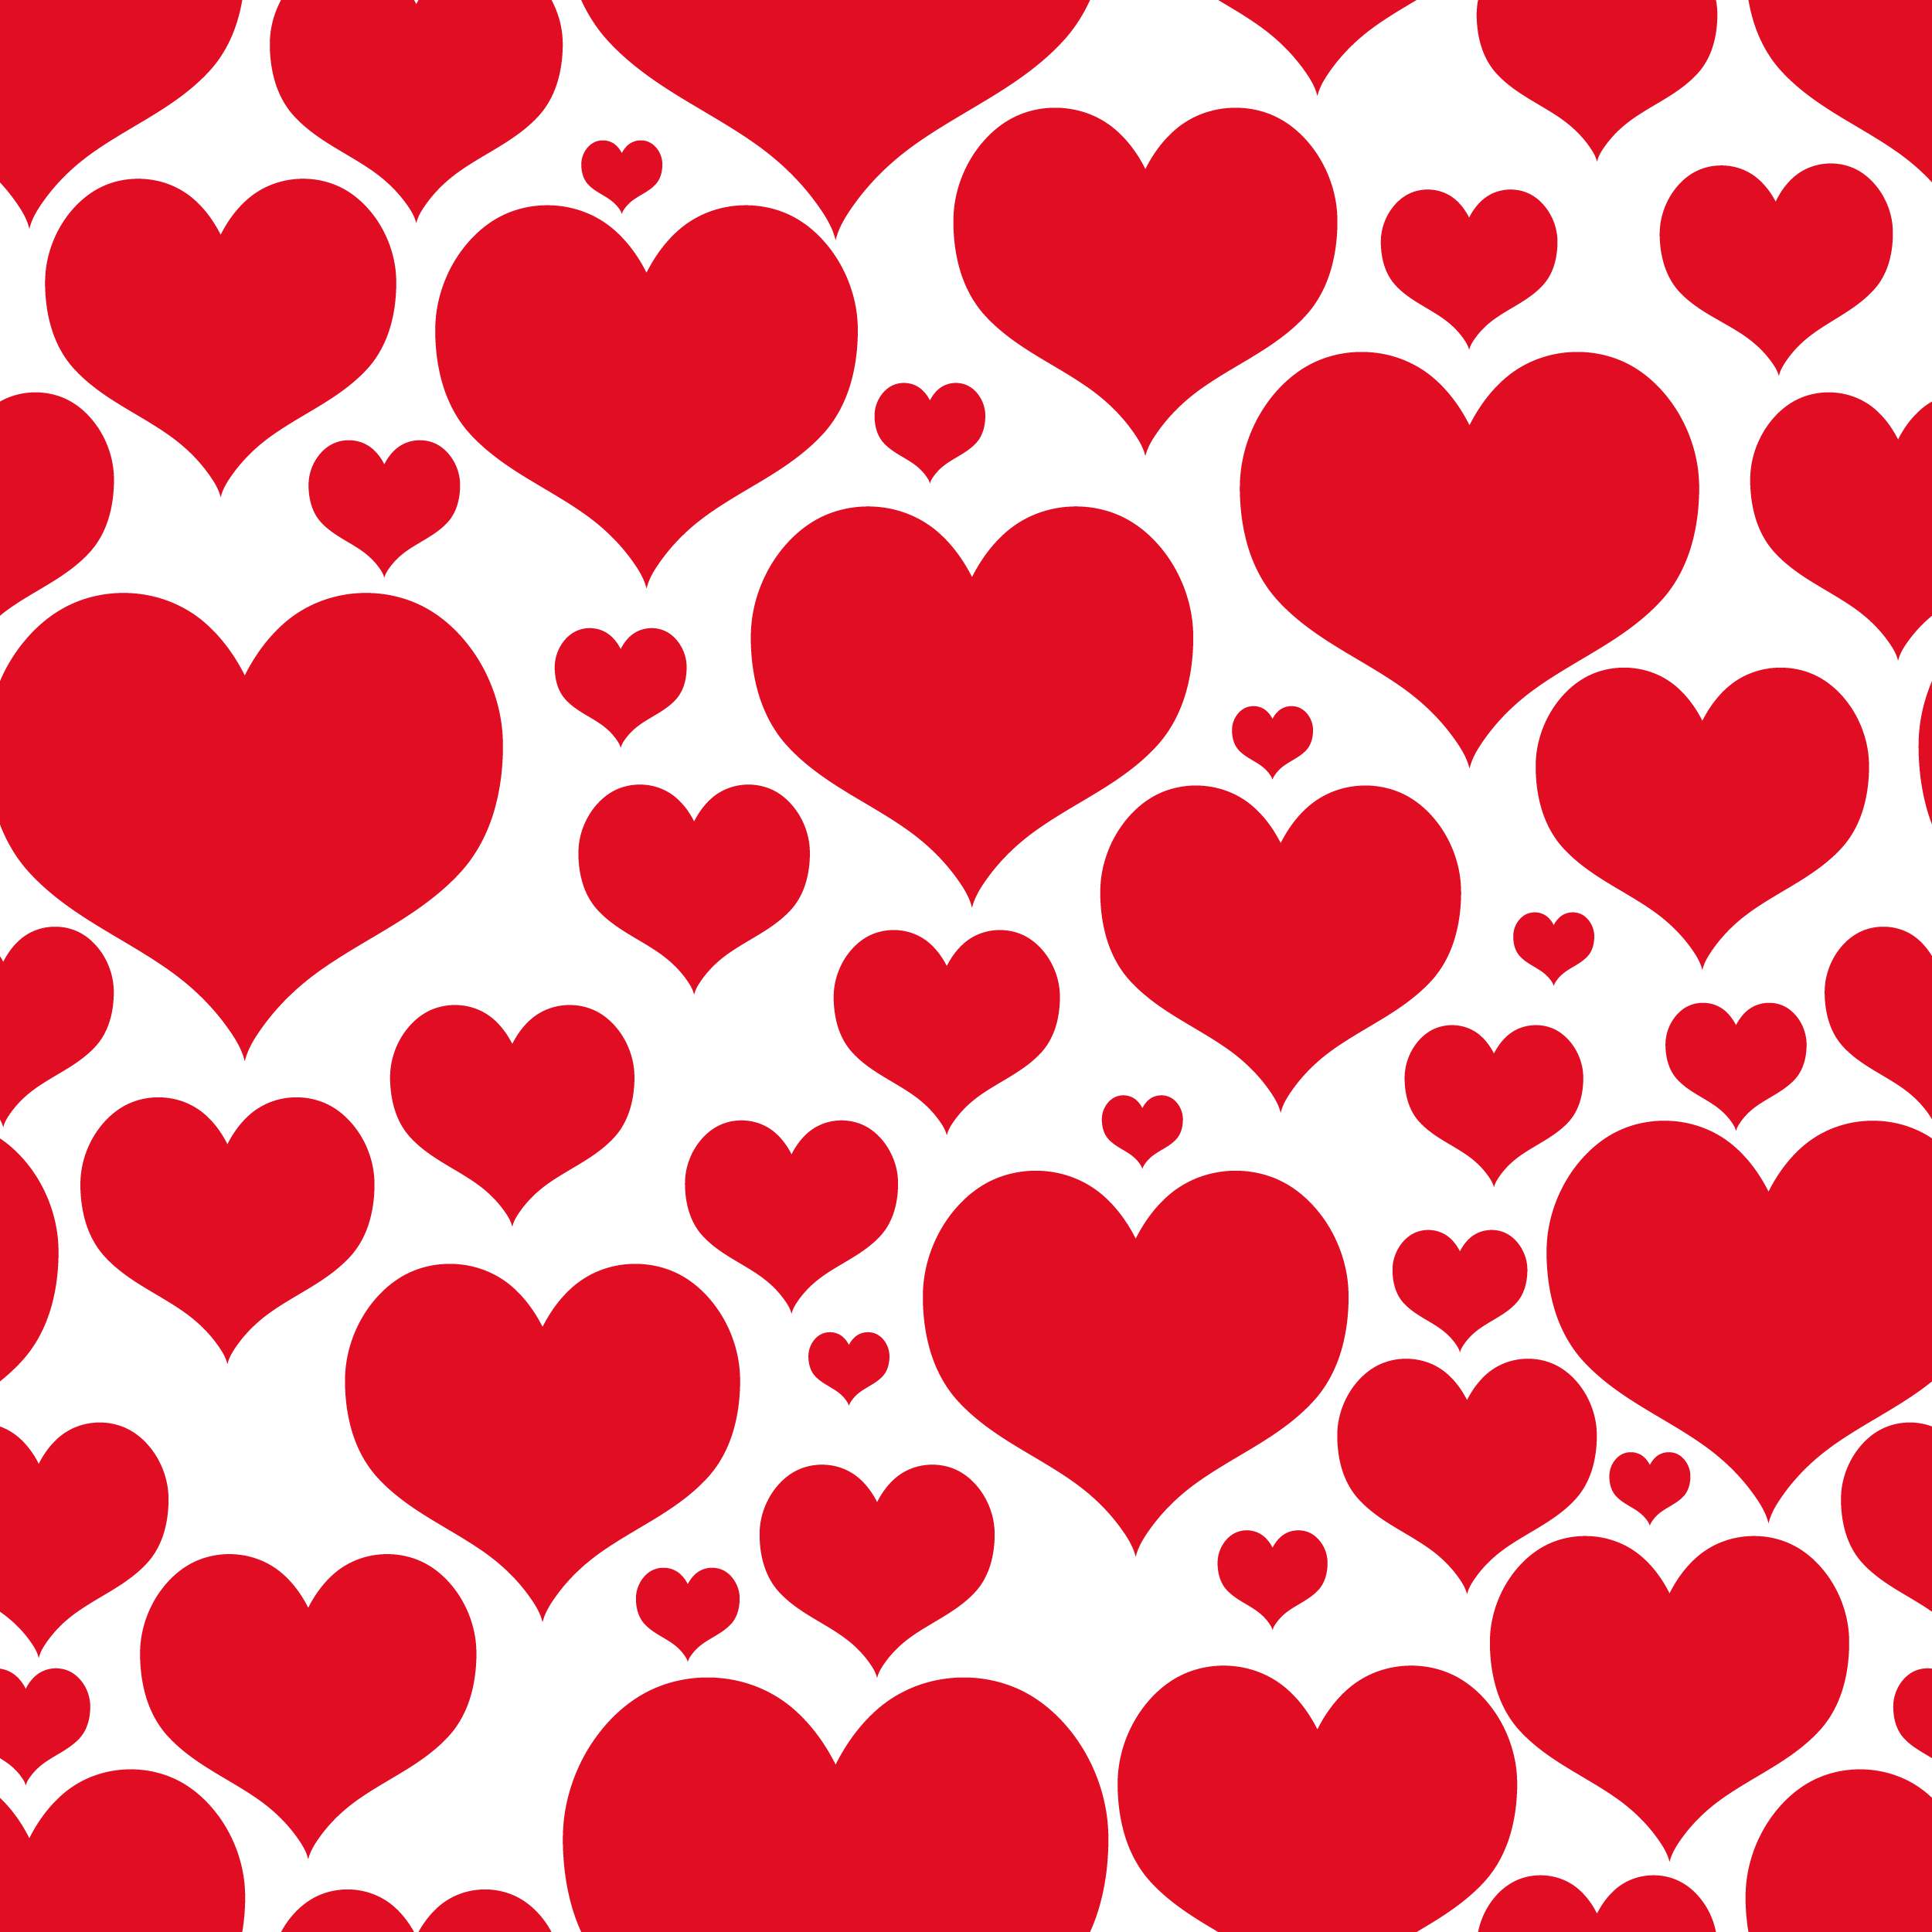 Valentines Day Transparent Heart Decor for Wallpaper Clipart 2500x2500